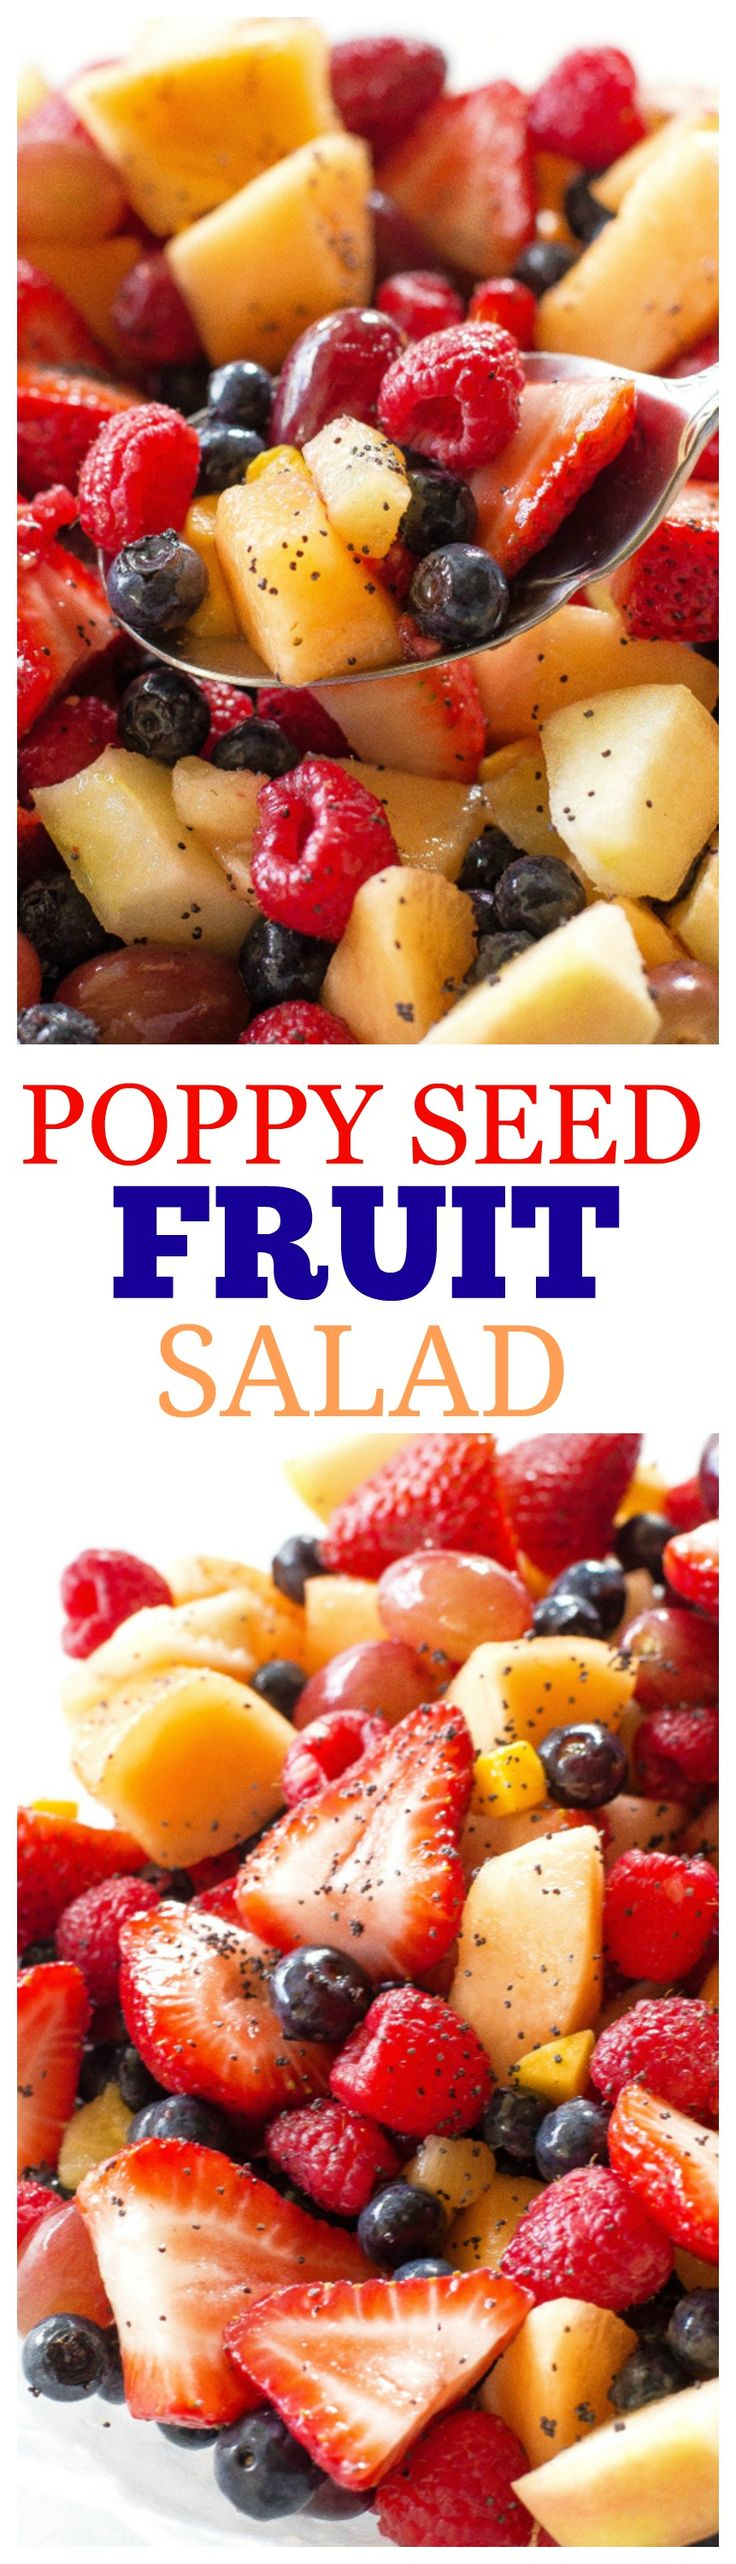 Poppy Seed Fruit Salad - sweet with a bright citrus flavor, honey,  and a little bit of ginger. the-girl-who-ate-everything.com